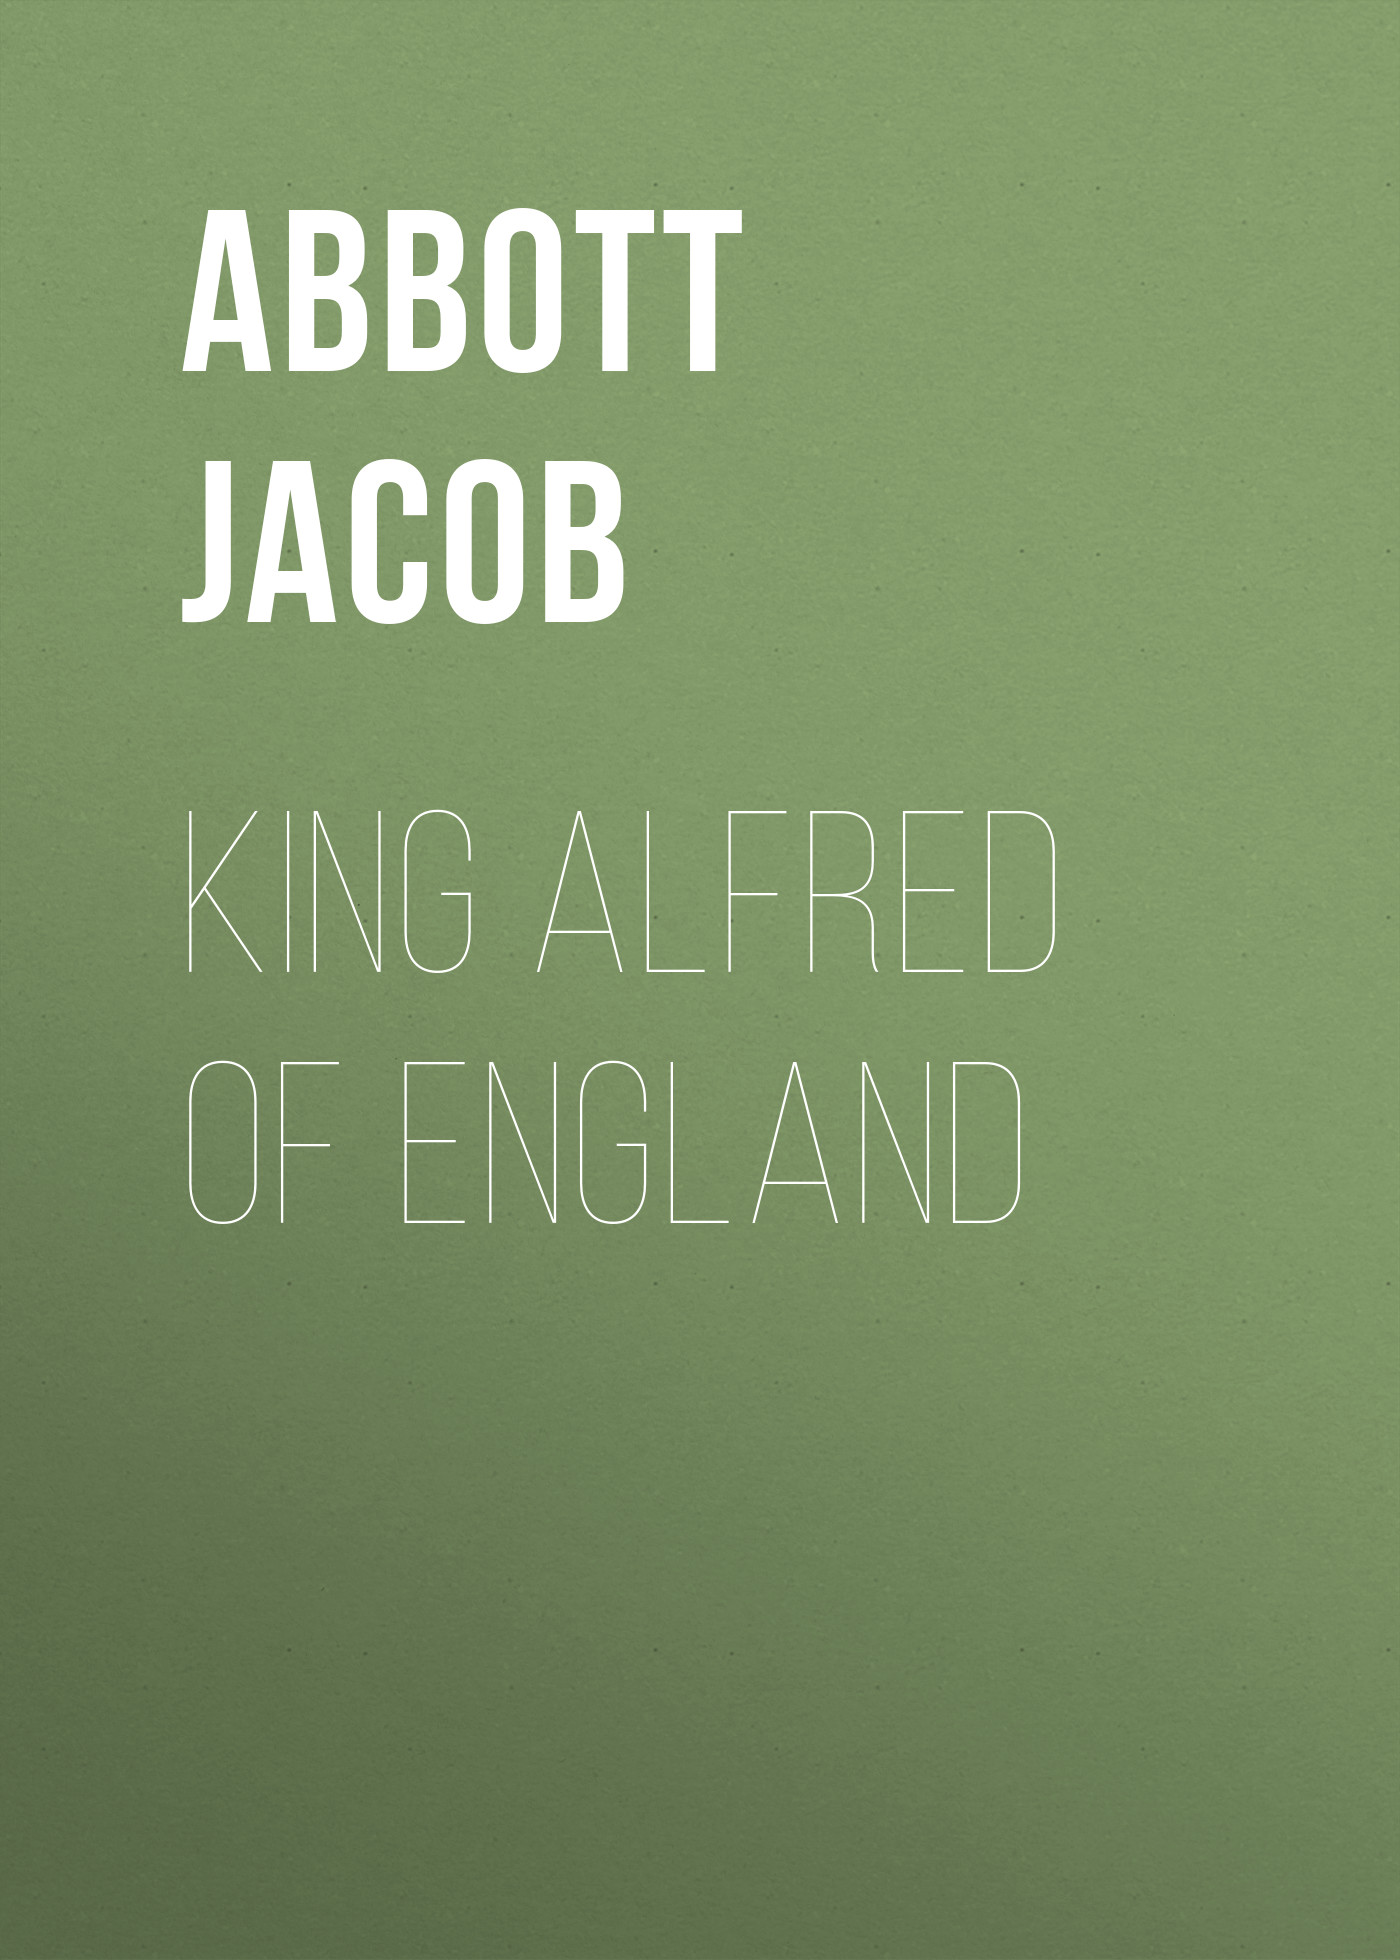 Abbott Jacob King Alfred of England abbott jacob cyrus the great